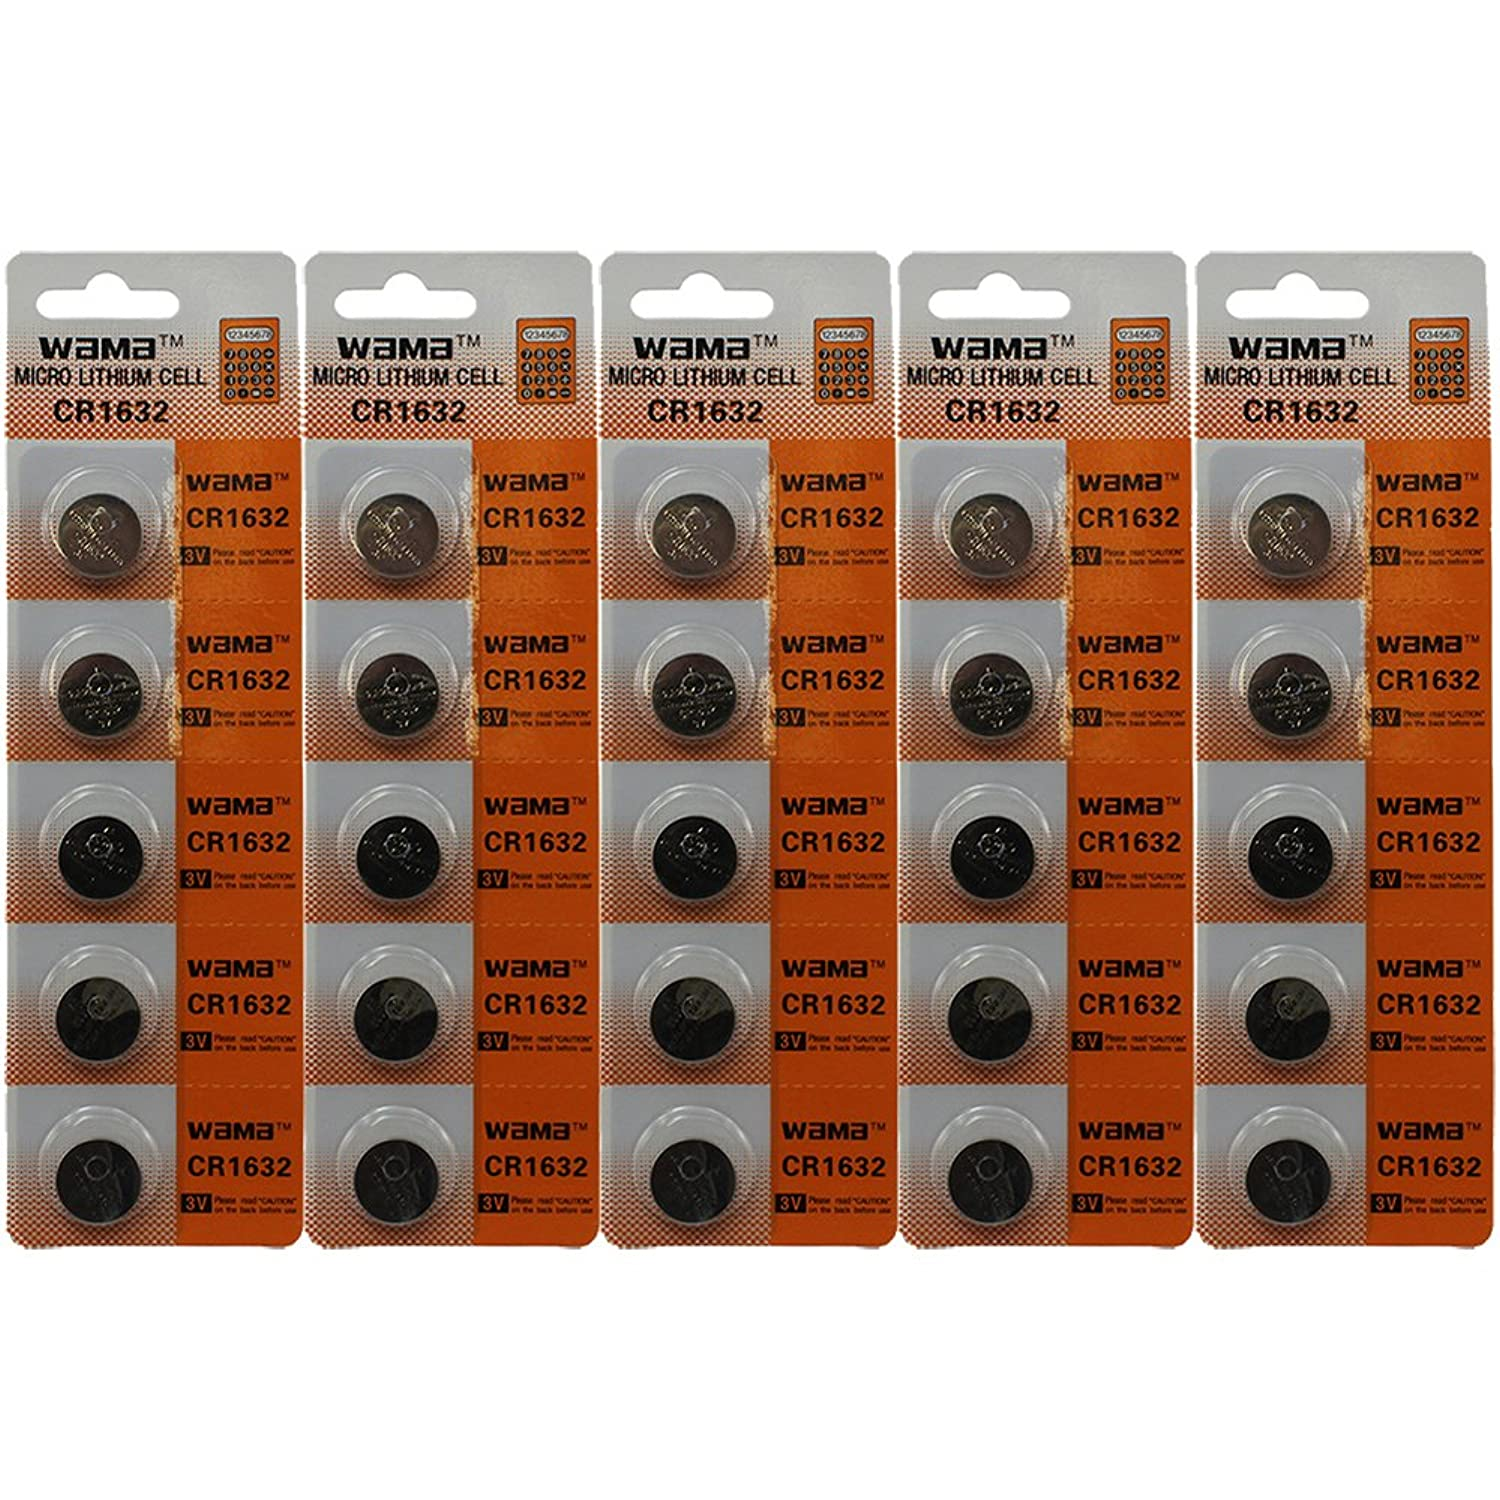 com cr button cell lithium watch batteries com 25 cr1632 button cell lithium watch batteries battery watches